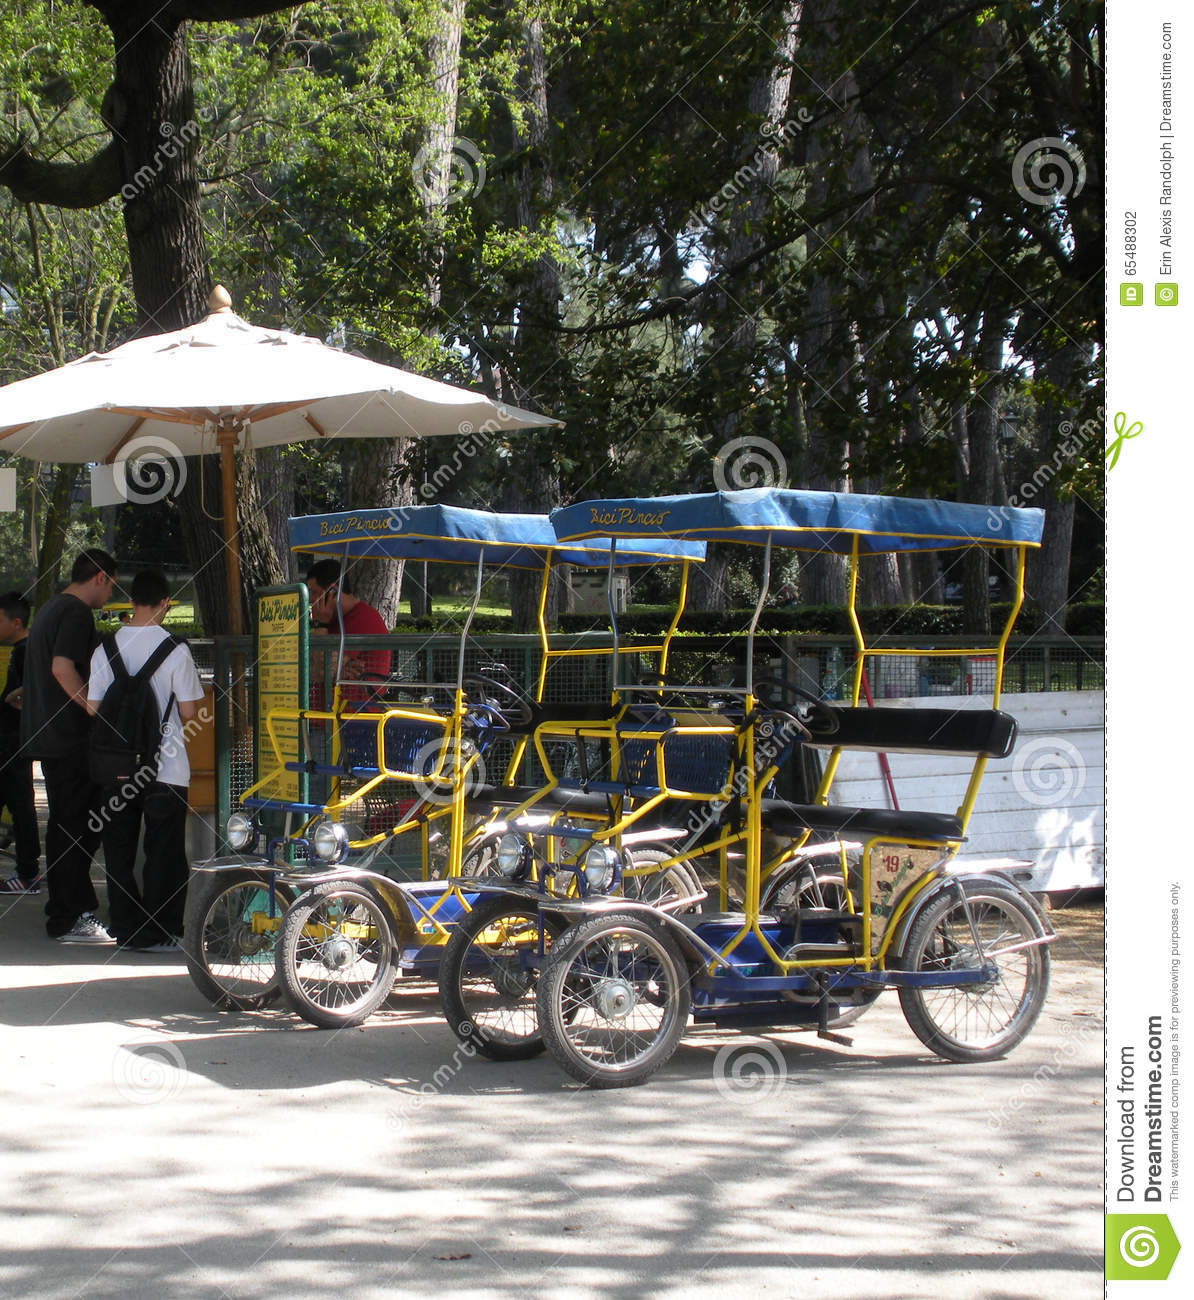 Surrey Bikes For Rent Villa Borghese Rome Italy Editorial